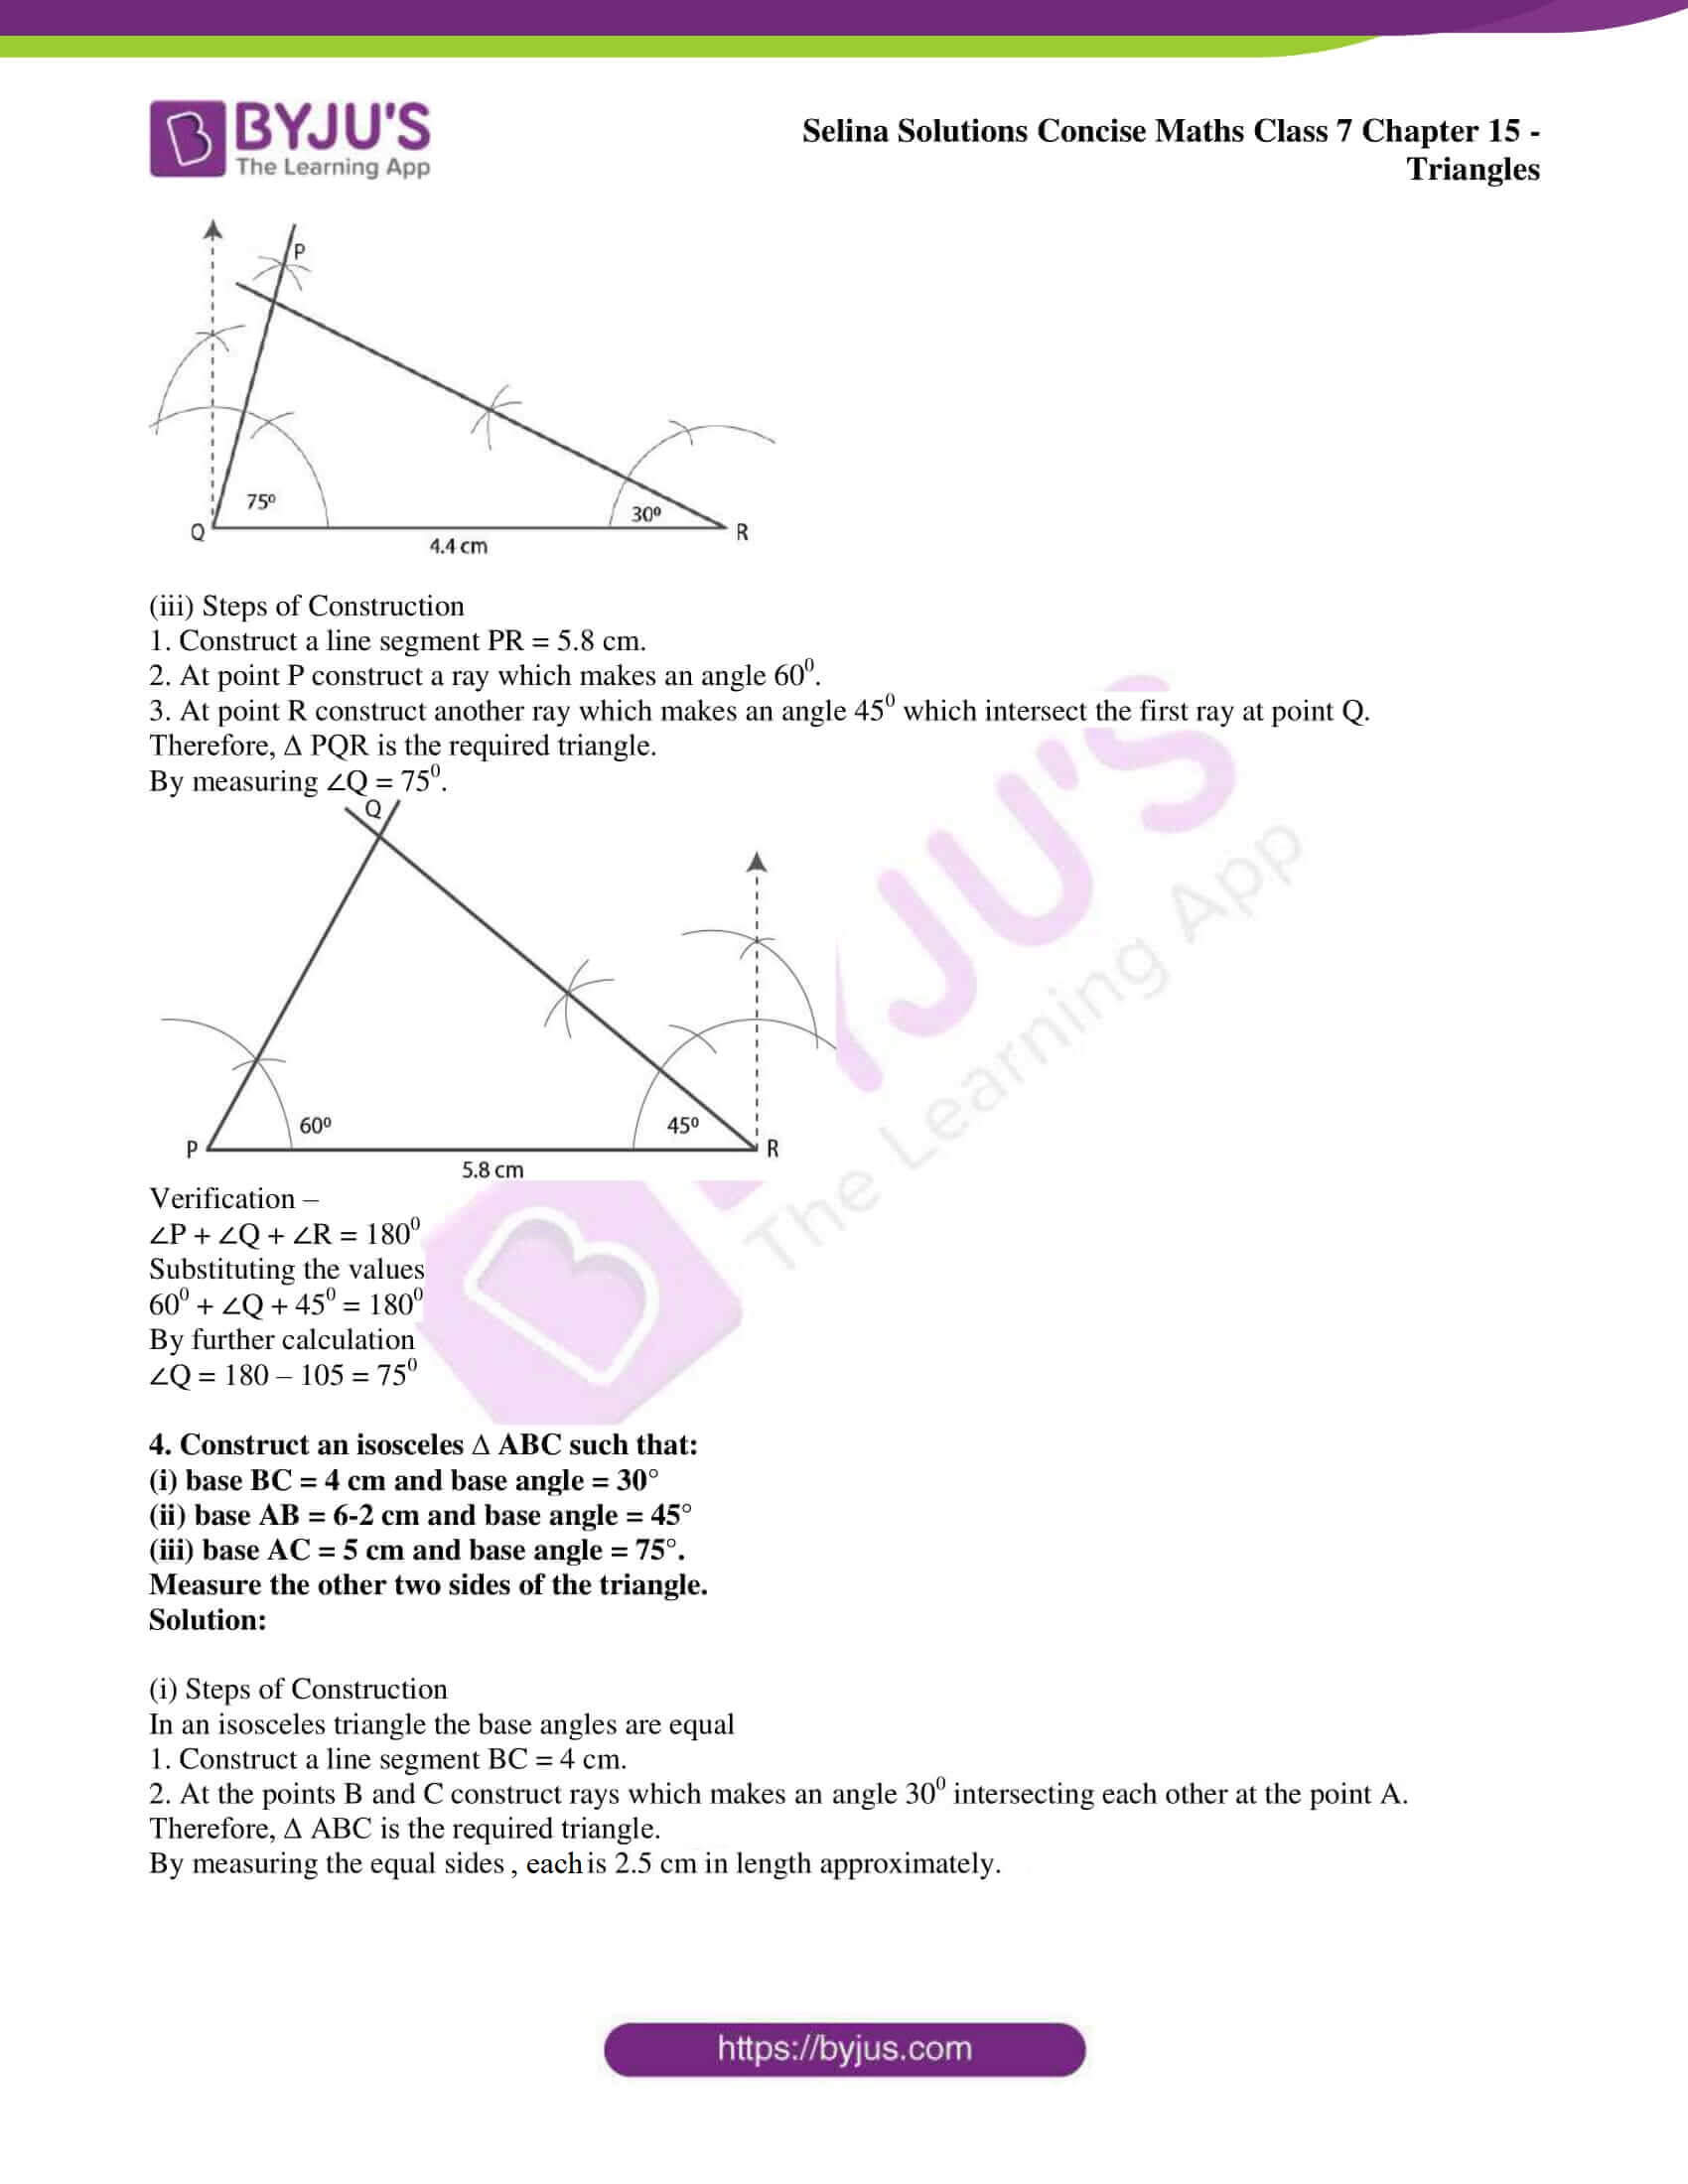 selina sol concise maths class 7 chapter 15 ex c 04